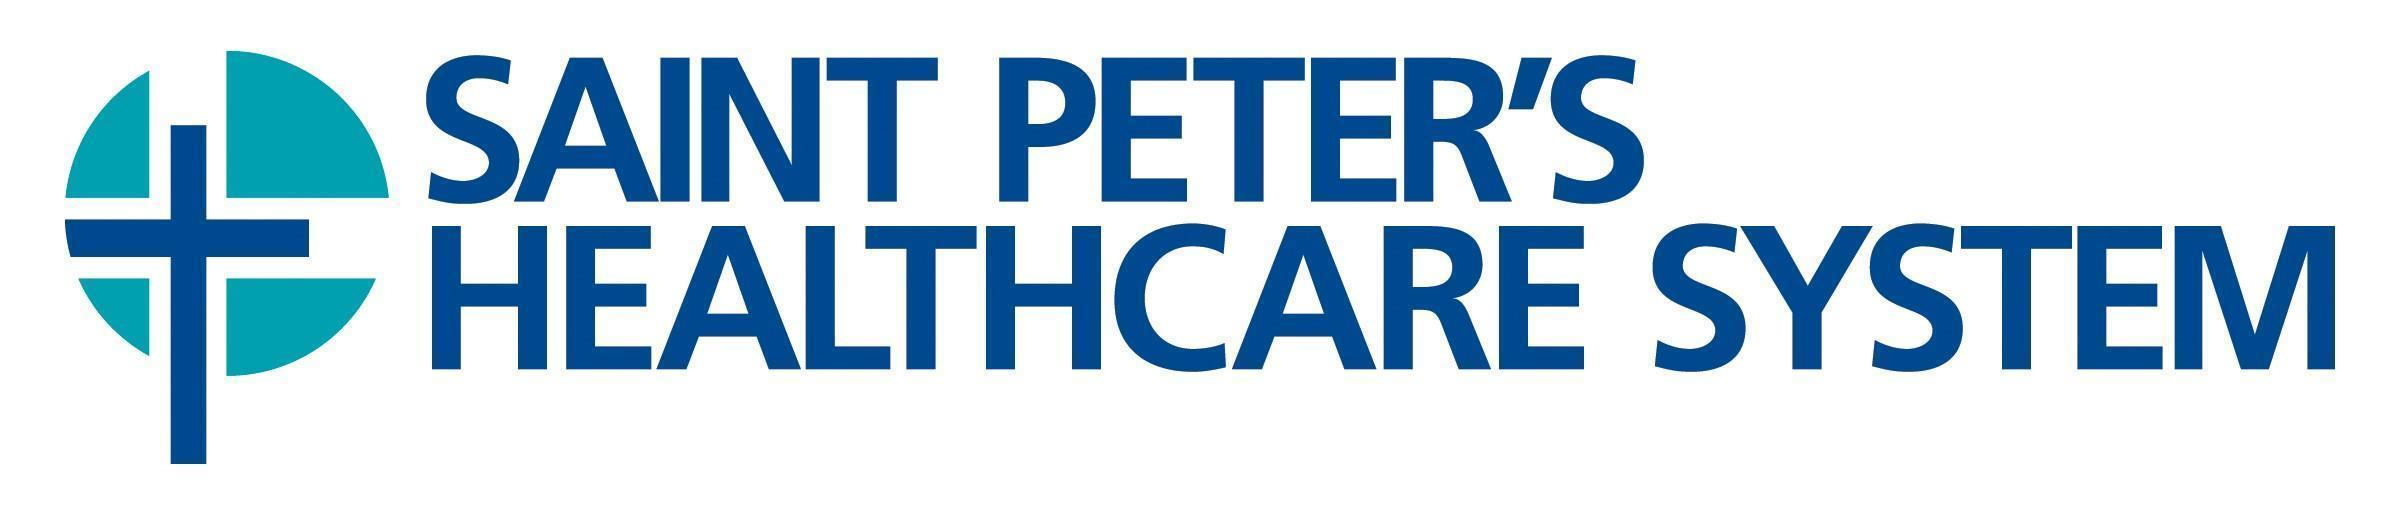 Pediatrician - Child Abuse - The Children's Hospital at Saint Peter's Healthcare System